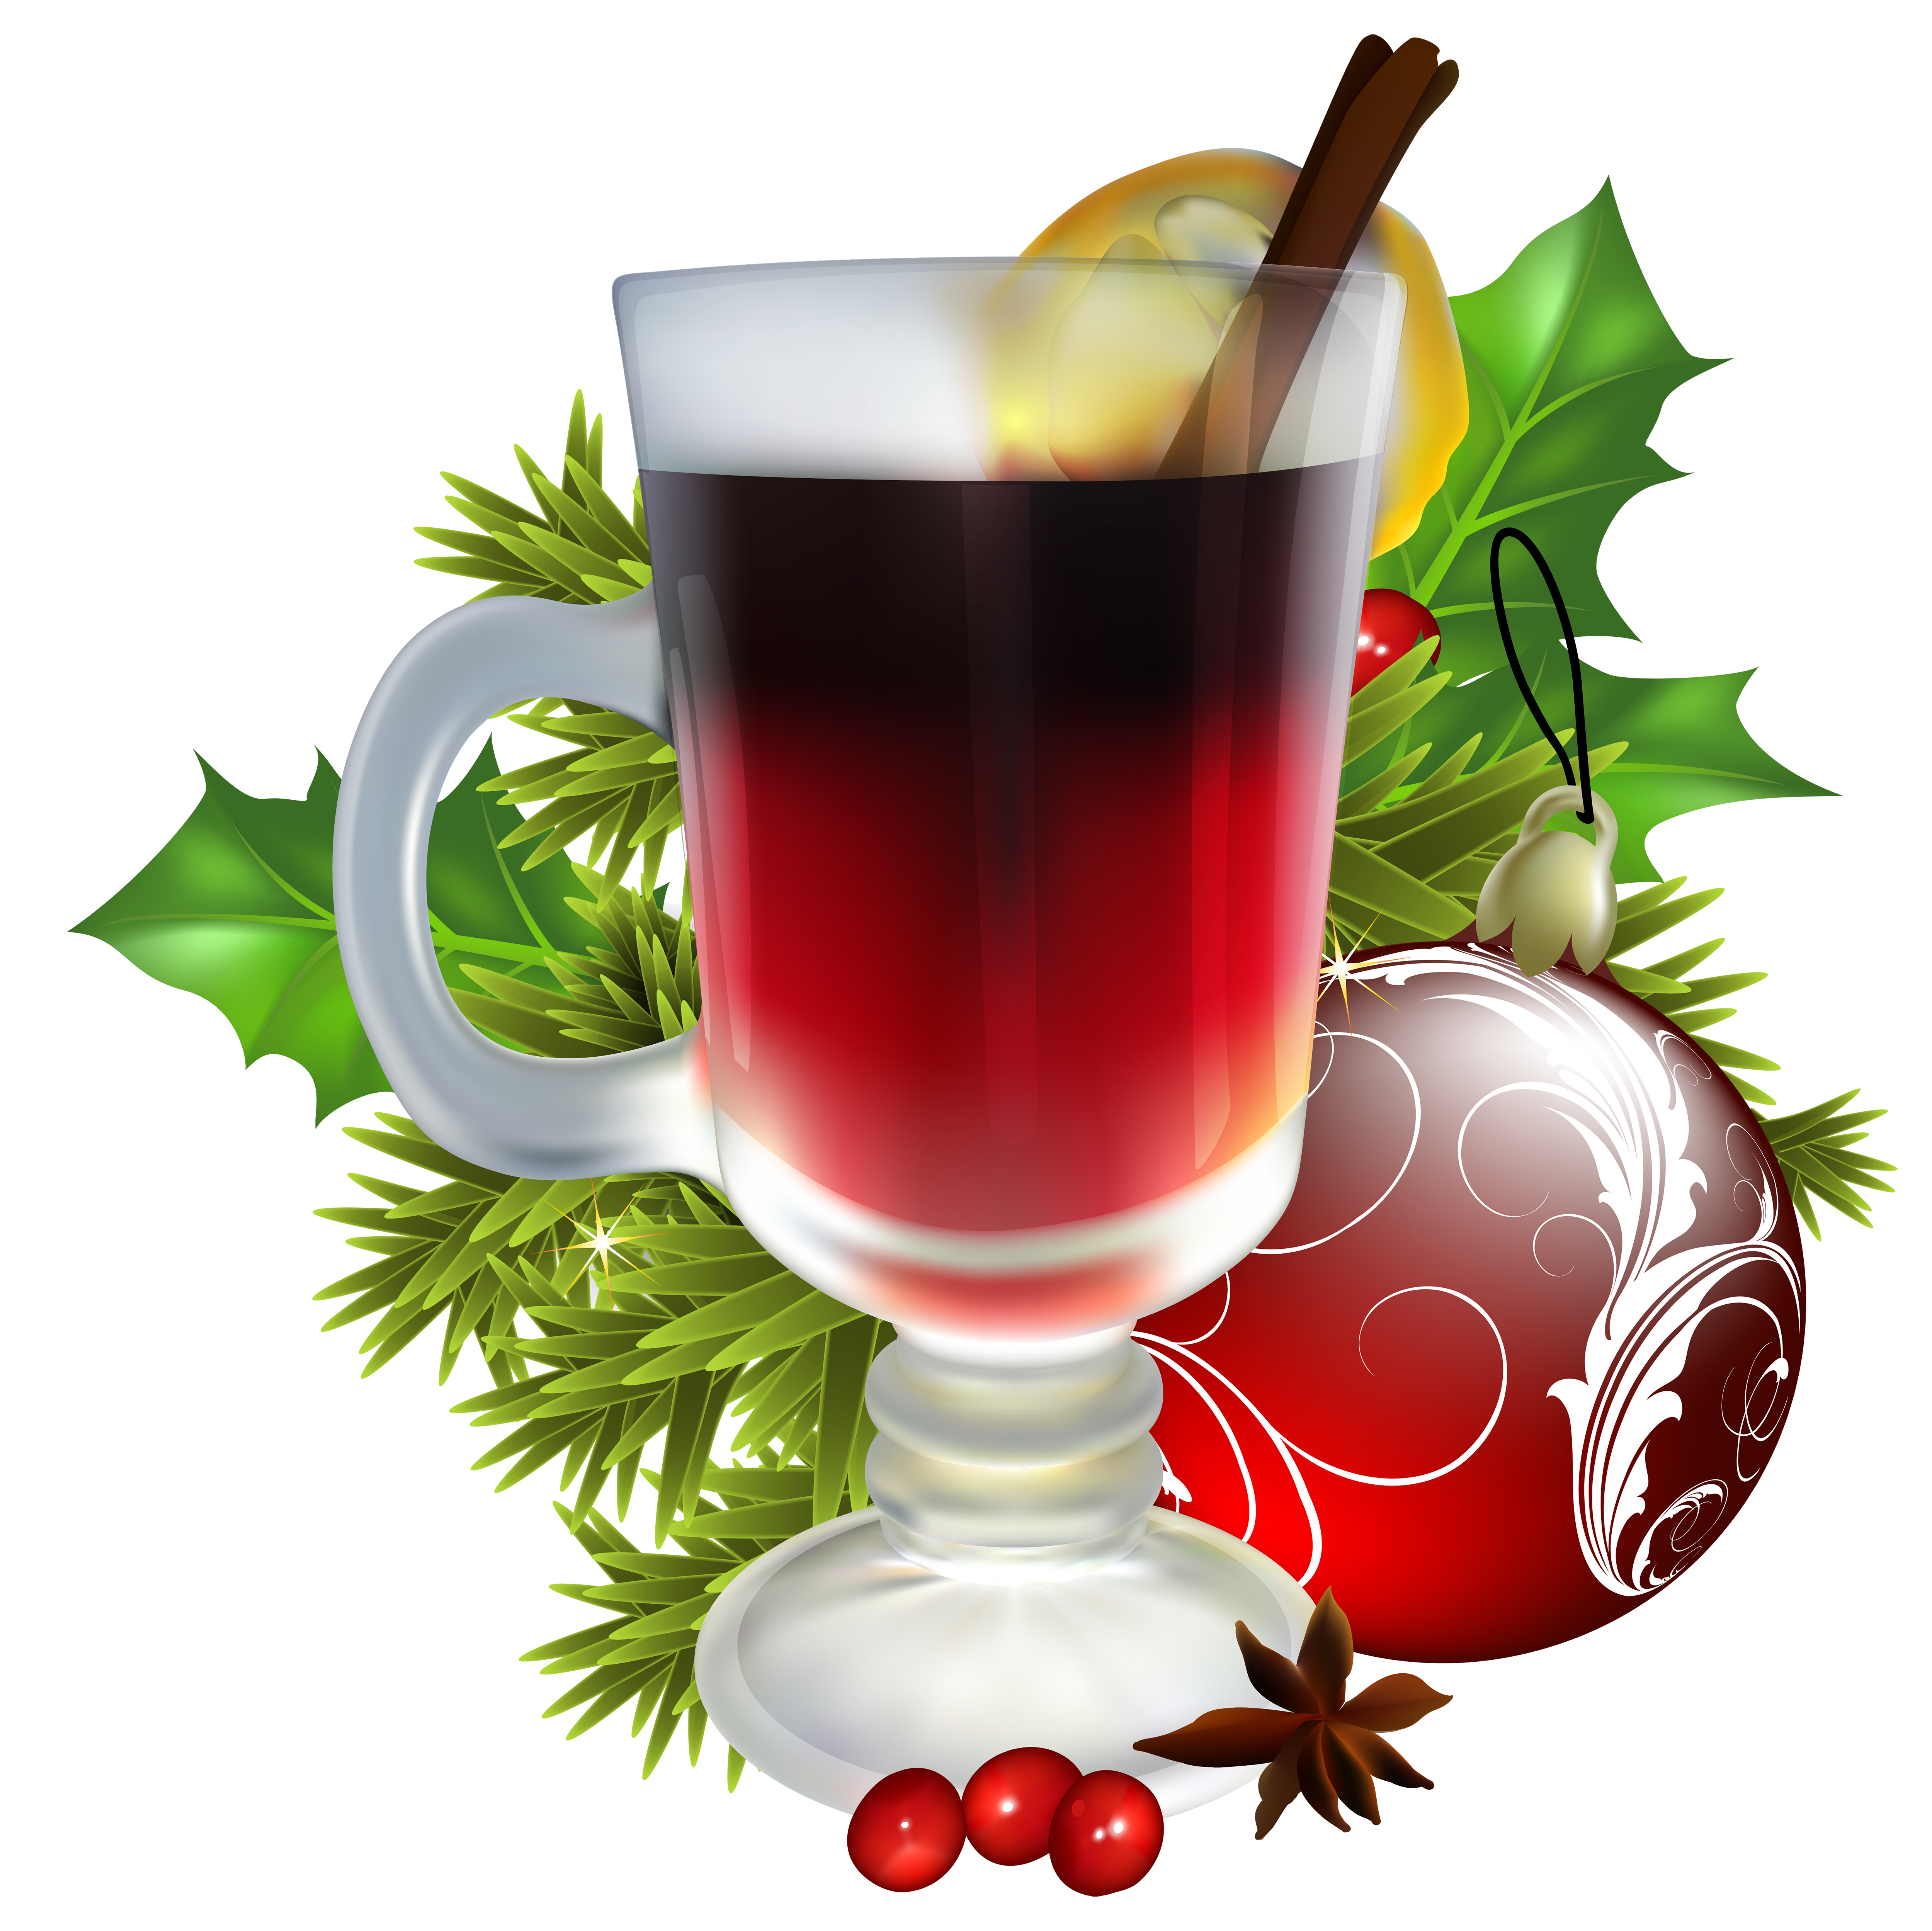 Christmas drink clipart graphic library Christmas Tea with Christmas Decorations PNG Image | Gallery ... graphic library